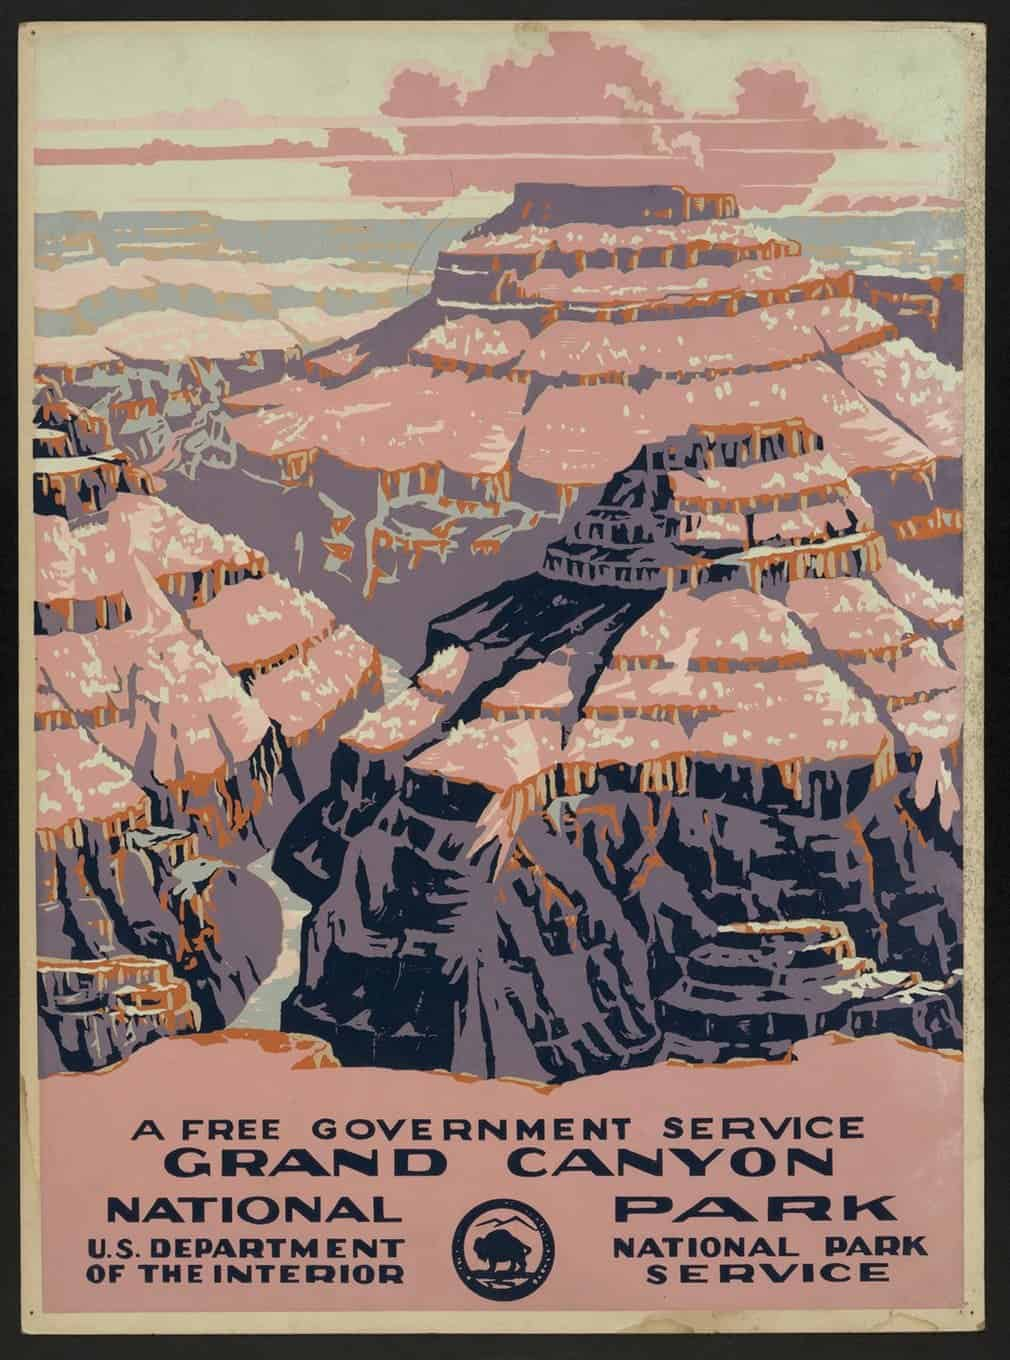 Grand Canyon national park poster, National Park Service, circa 1938